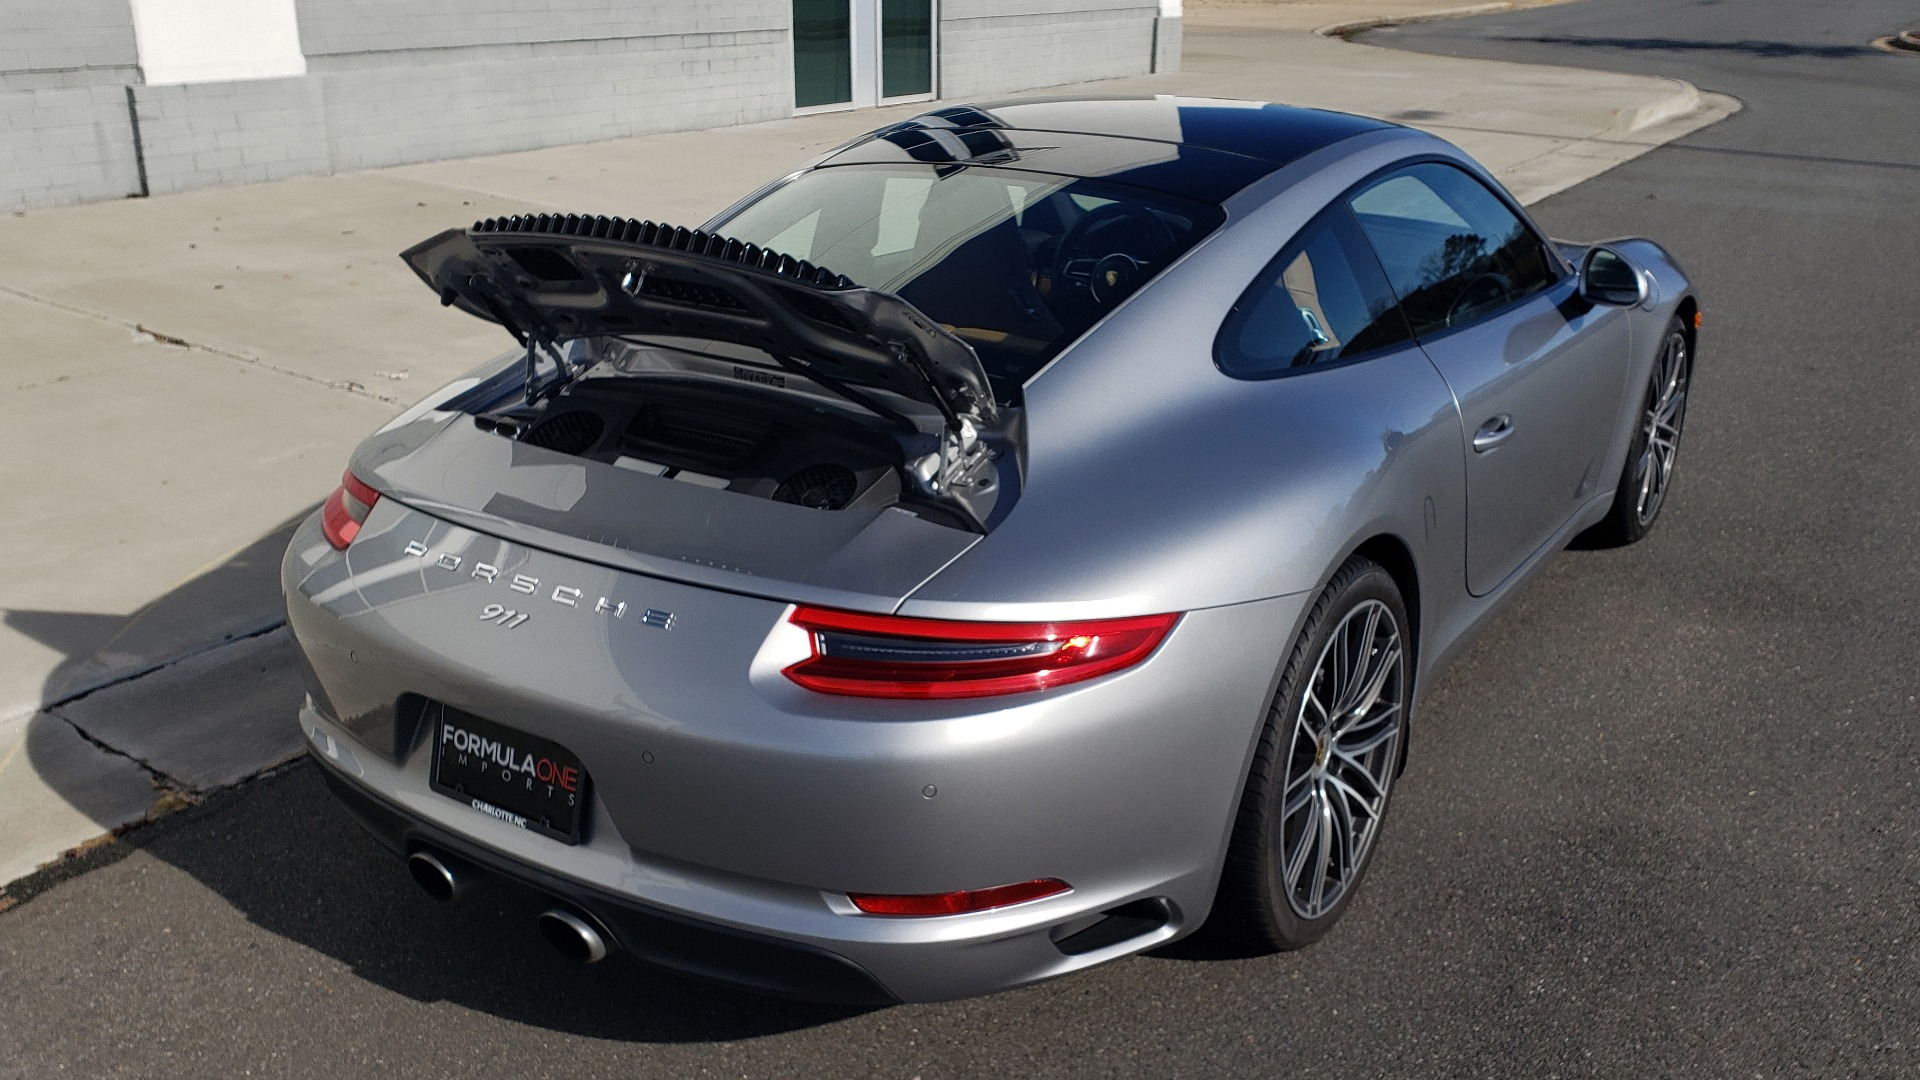 Used 2017 Porsche 911 CARRERA COUPE / 3.0L / 7-SPD MAN / NAV / PDLS / SUNROOF / REARVIEW for sale Sold at Formula Imports in Charlotte NC 28227 17